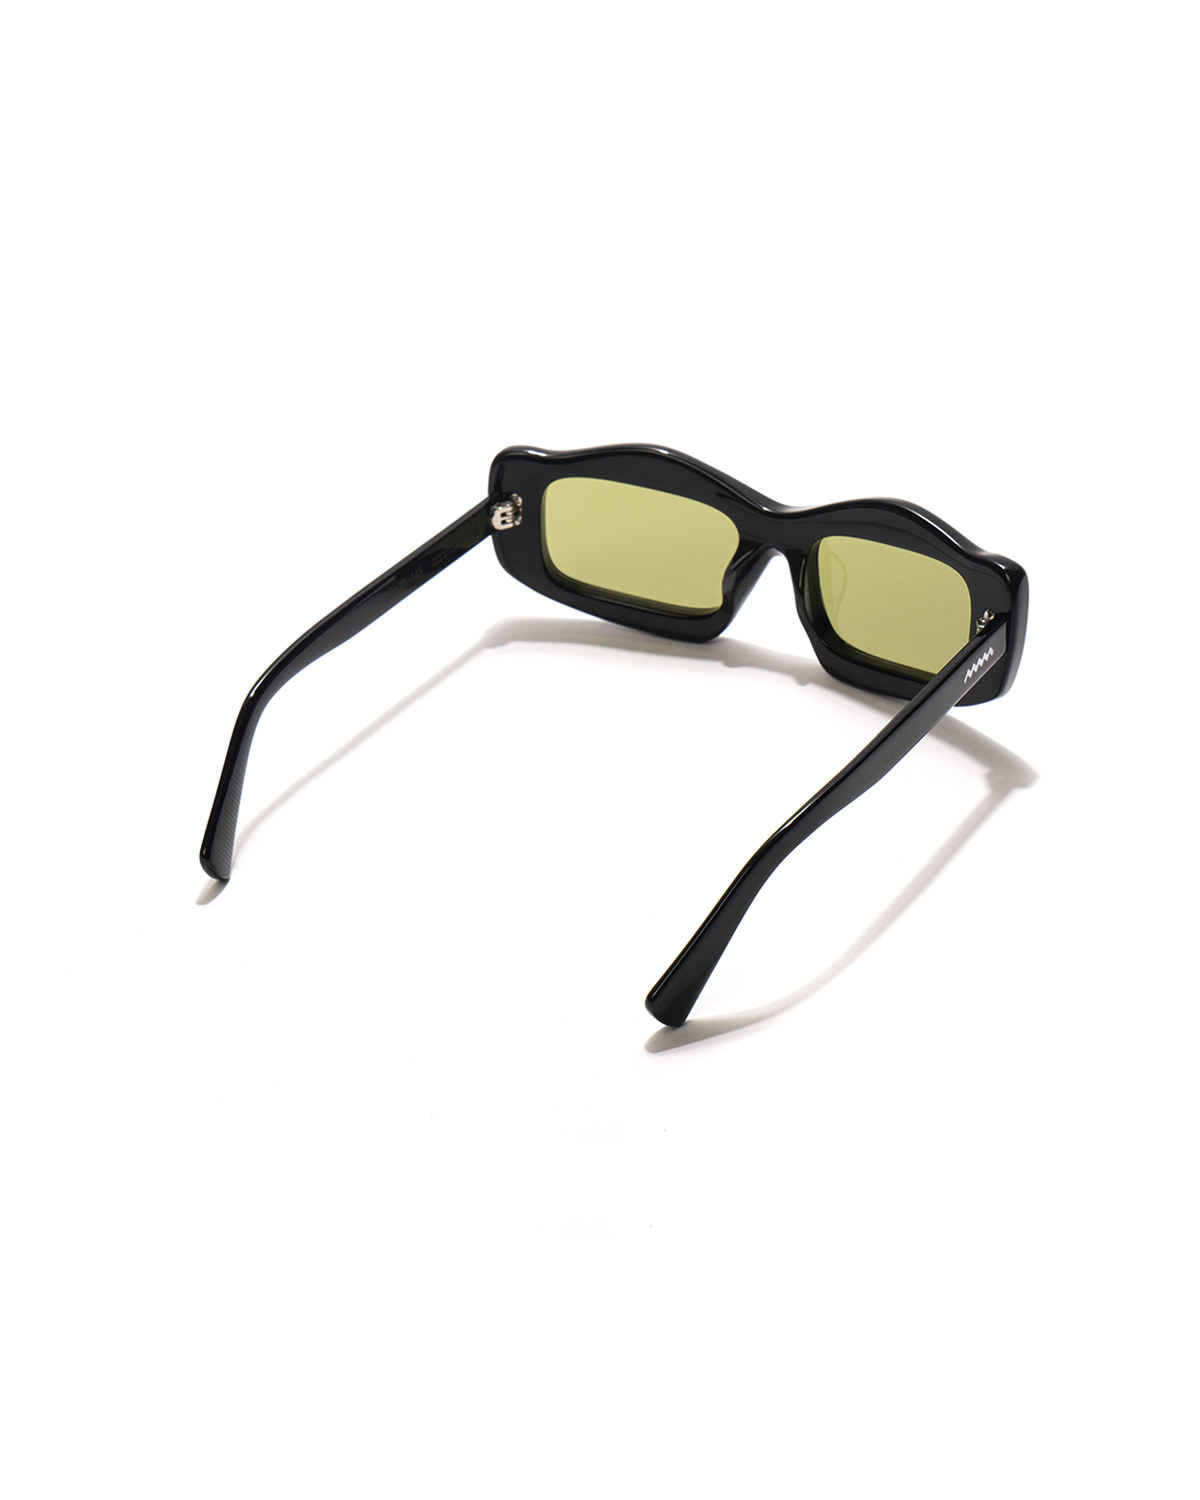 Brain Dead Kurata Sunglasses in Black